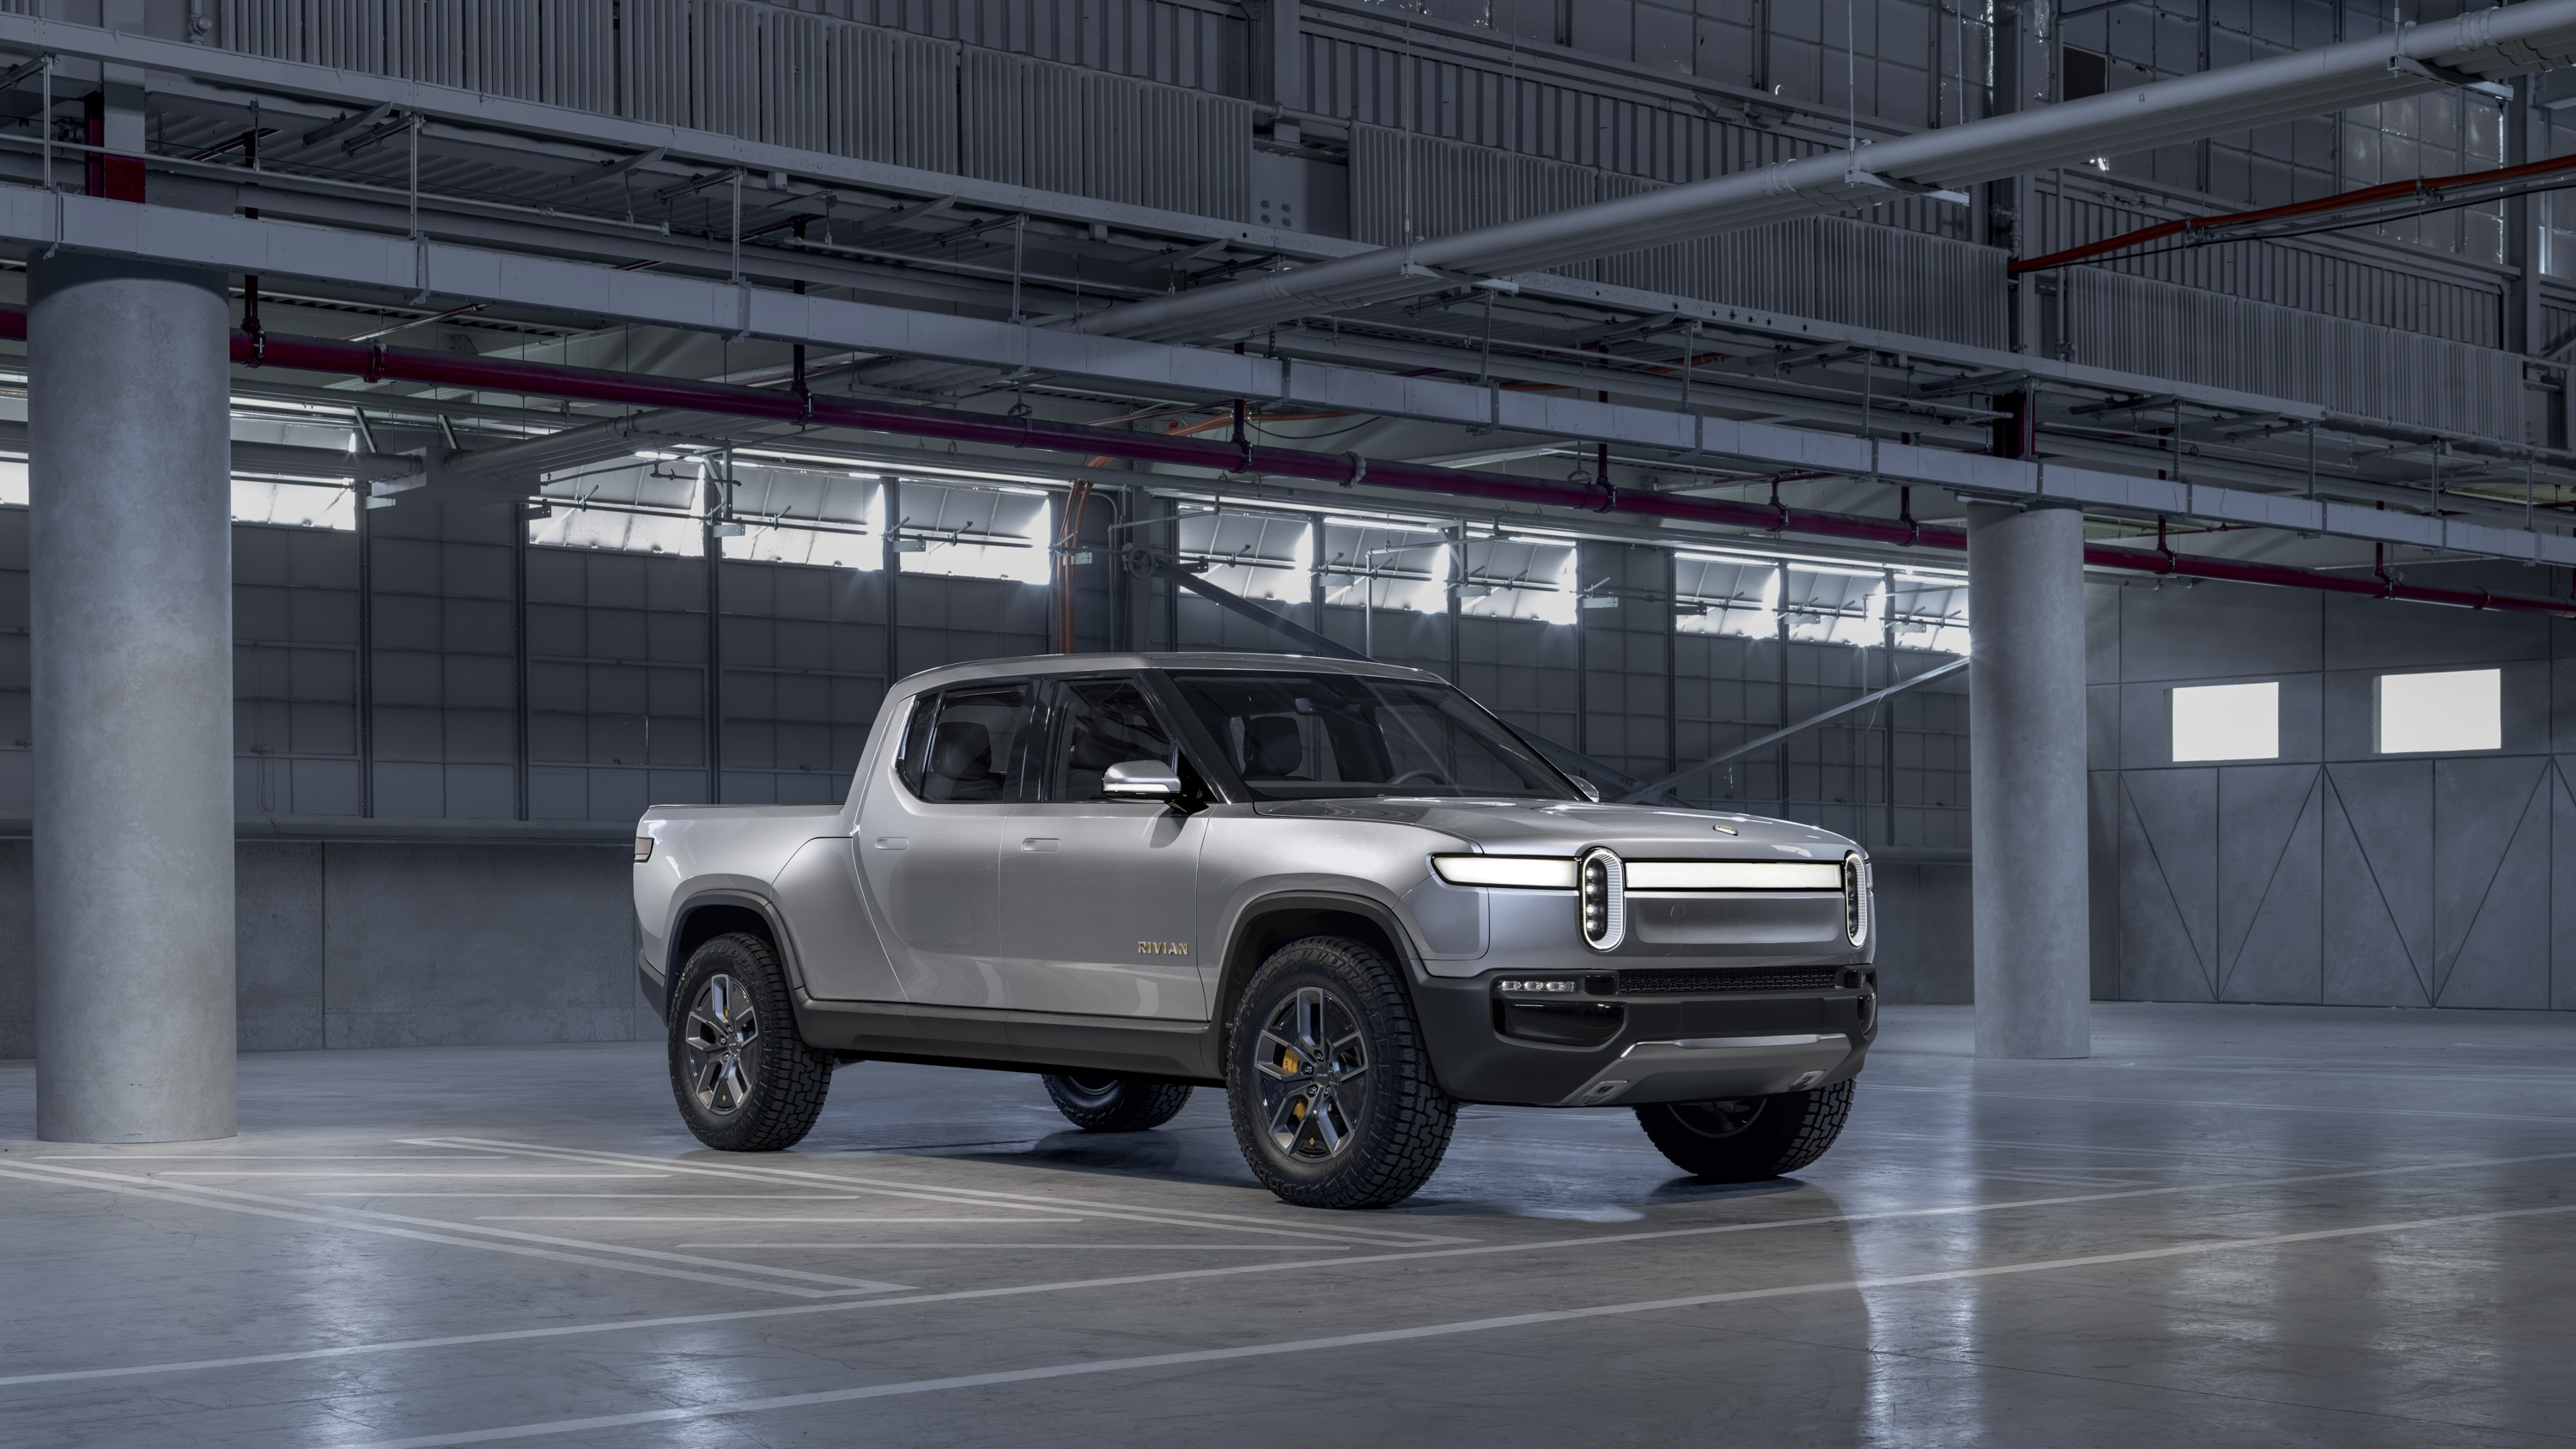 The 2020 Rivian R1t Electric Truck Middle Fingers Tesla